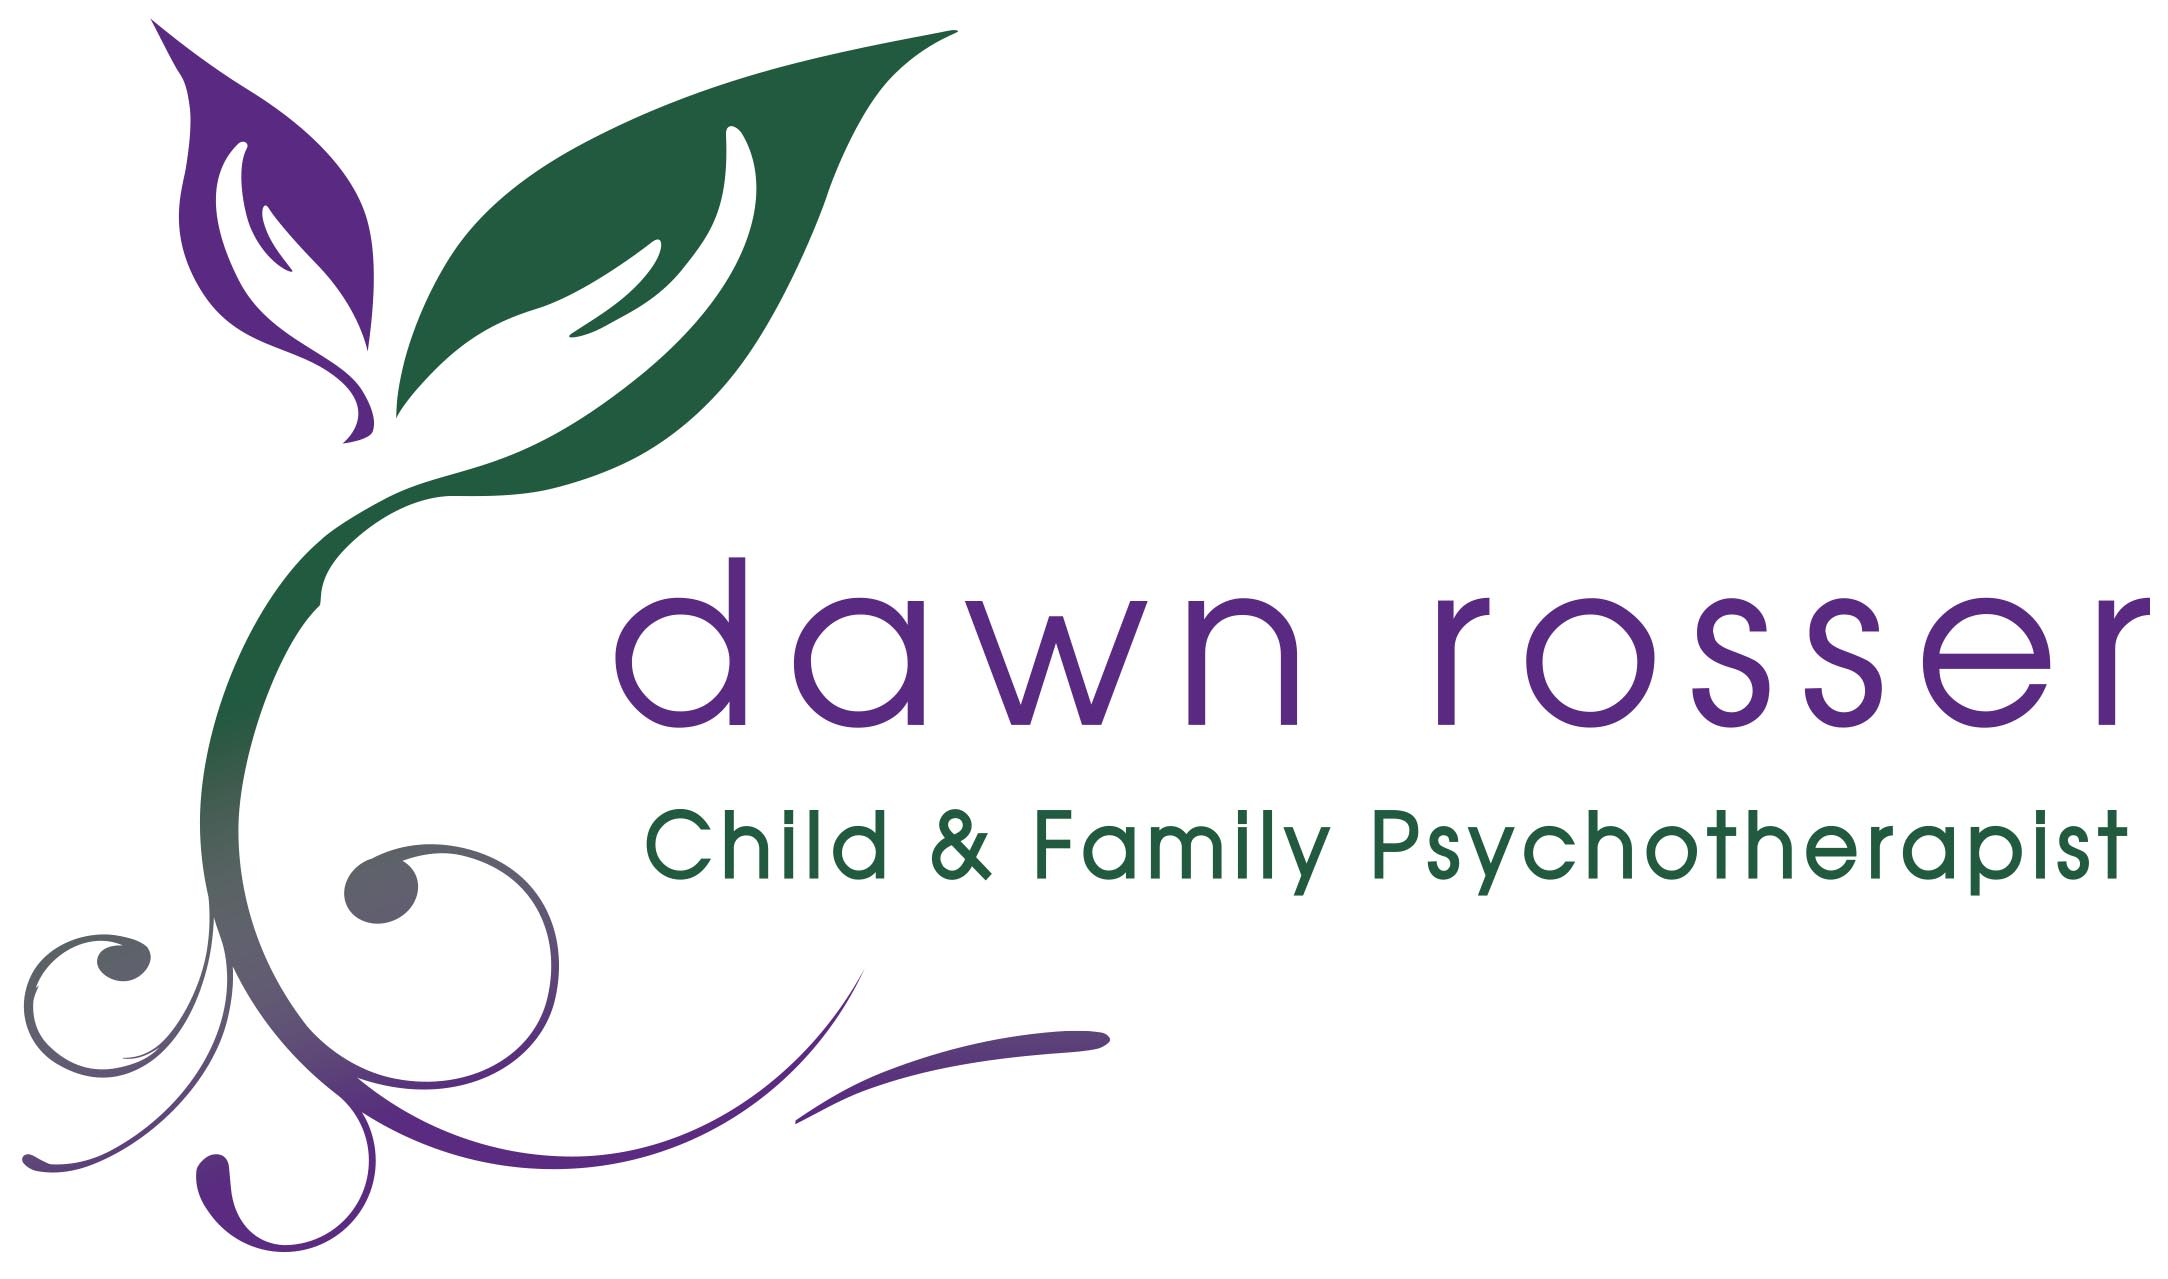 Child and Family Psychotherapist